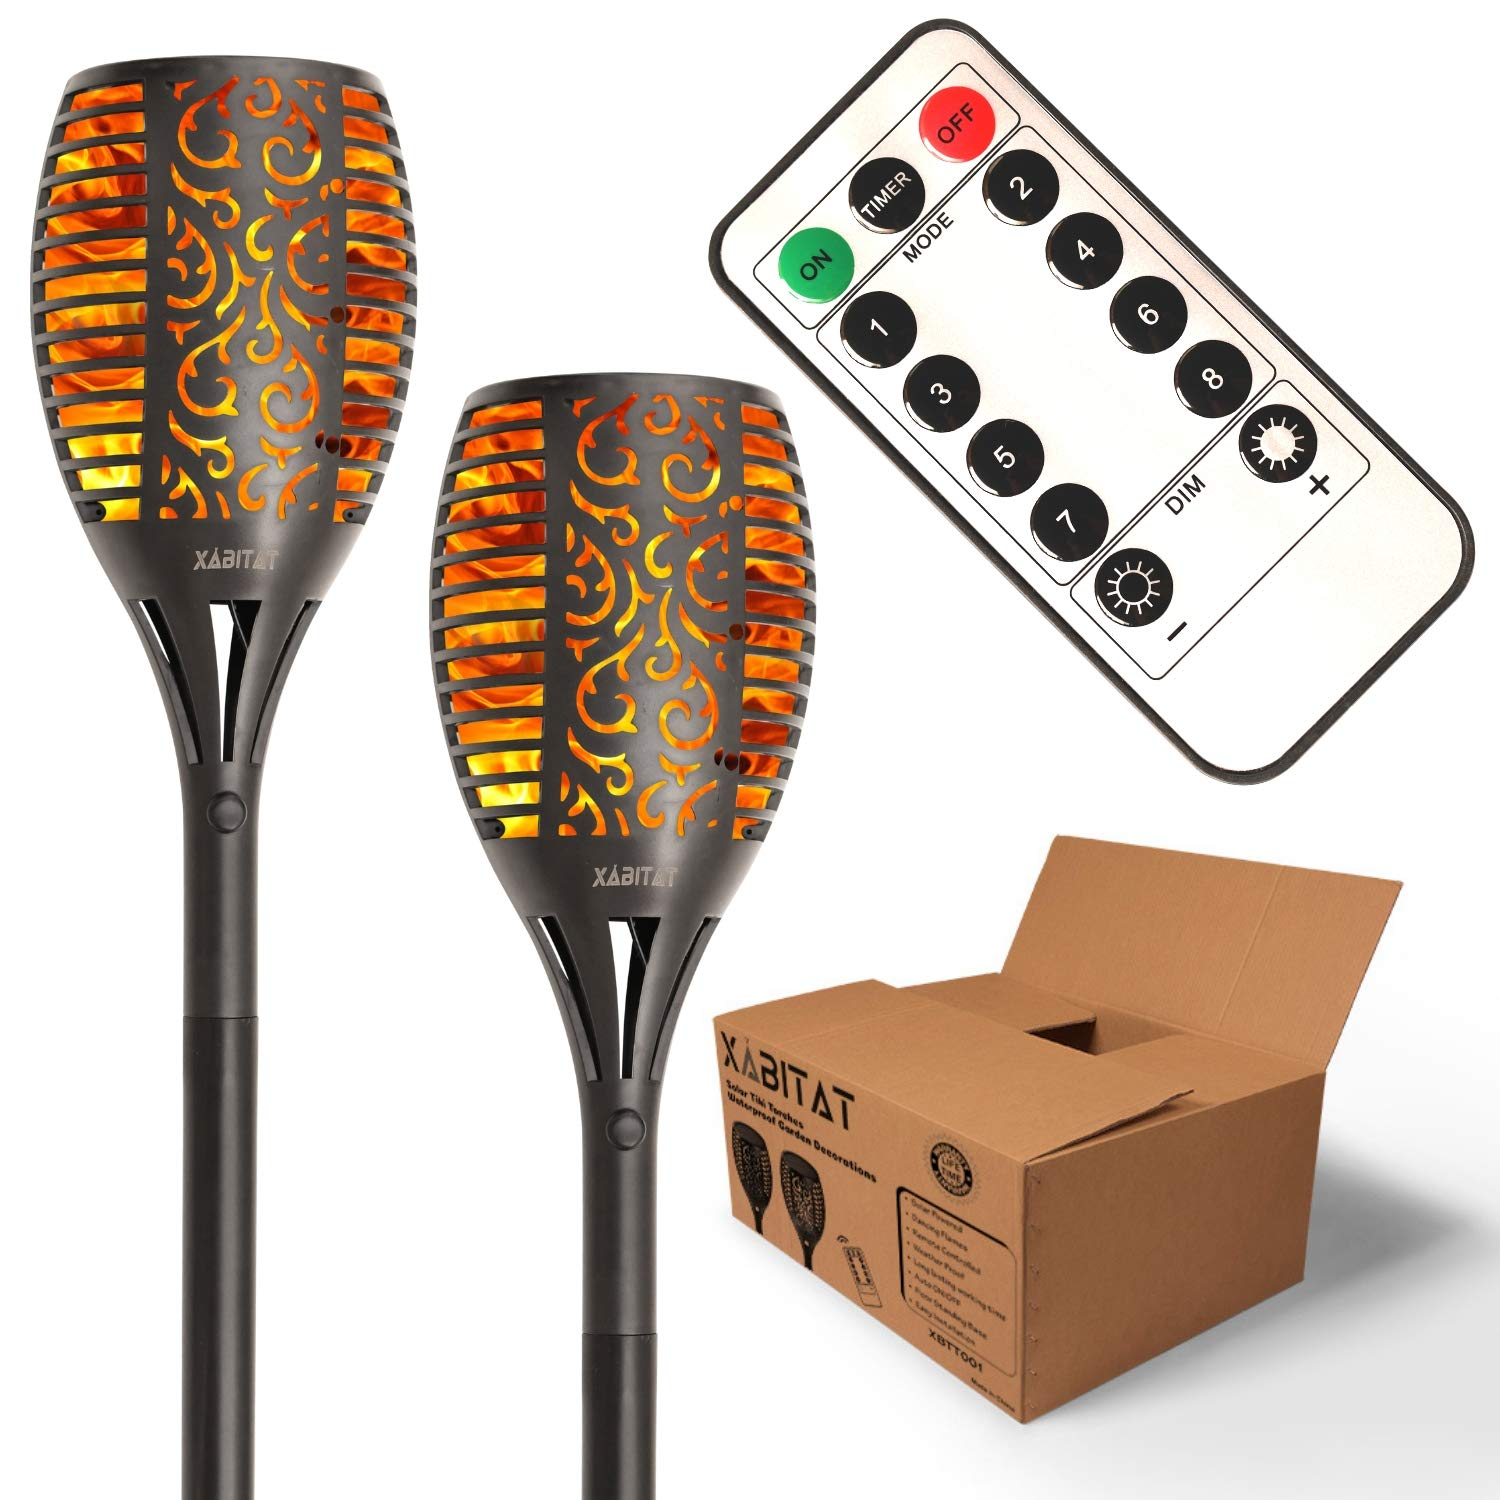 Xabitat Solar Tiki Torch Lights - Remote Controlled Flickering Flame Yard Decorations - LED Waterproof Outdoor Lighting - Patio and Pathway Decor - Suits Lawn Deck and Driveway Decoration - 2 Pack